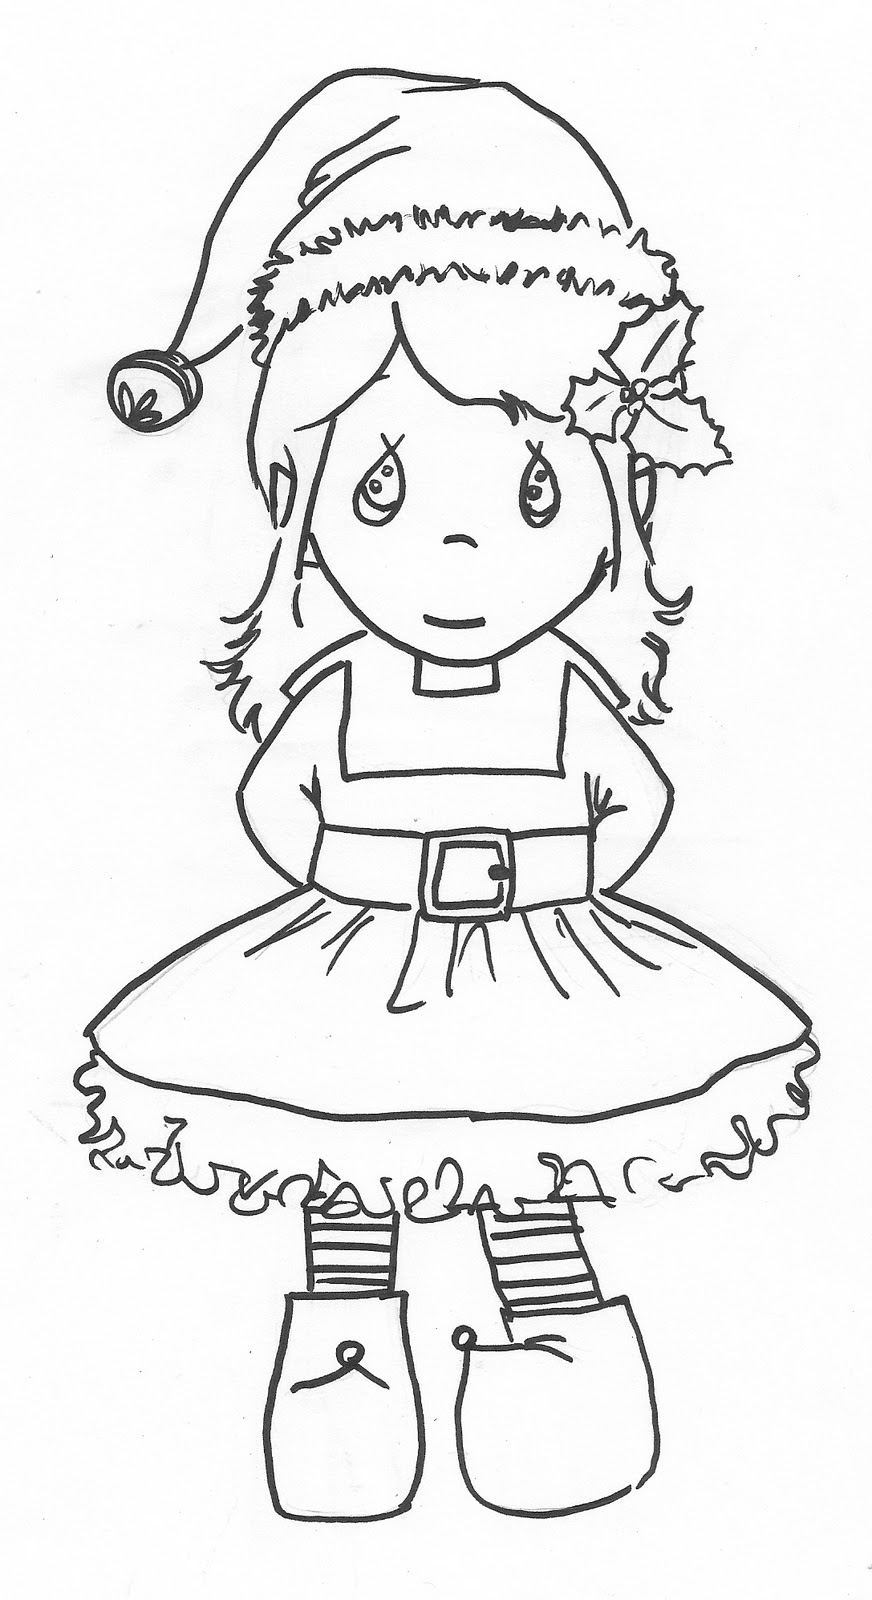 Coloring book pictures of elves - Squiggle